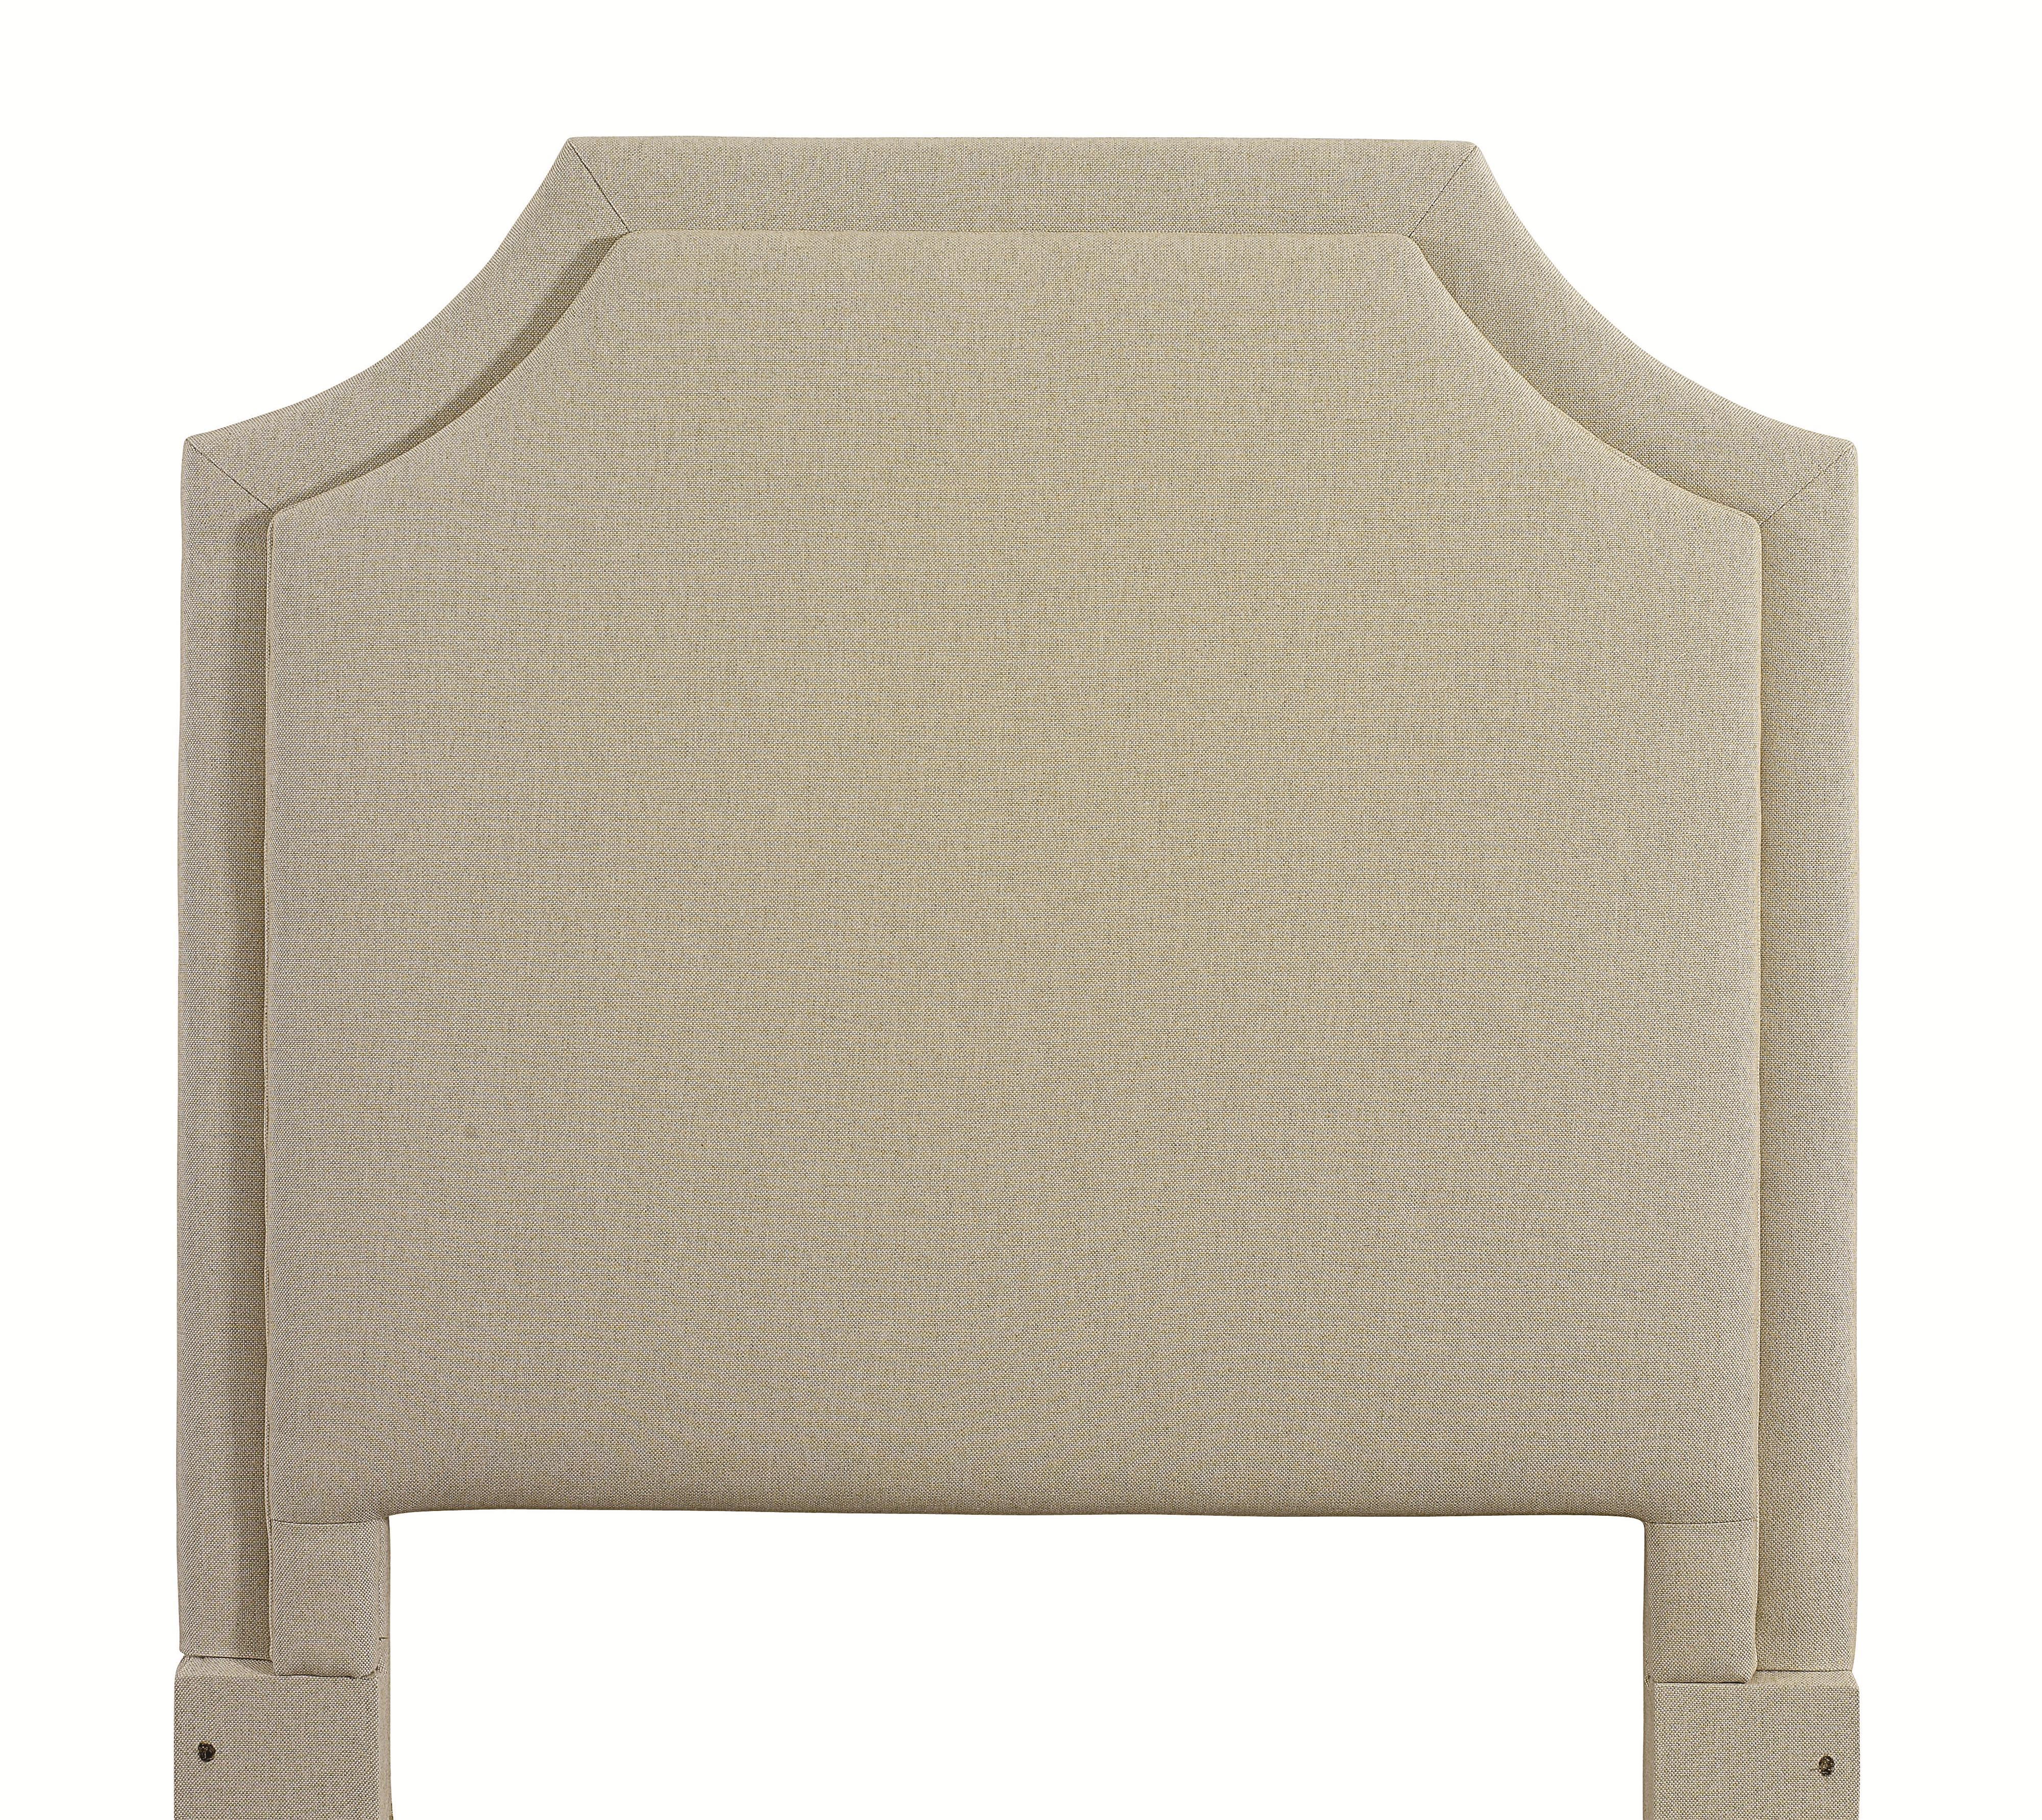 Custom Upholstered Beds King Florence Upholstered Headboard by Bassett at Crowley Furniture & Mattress